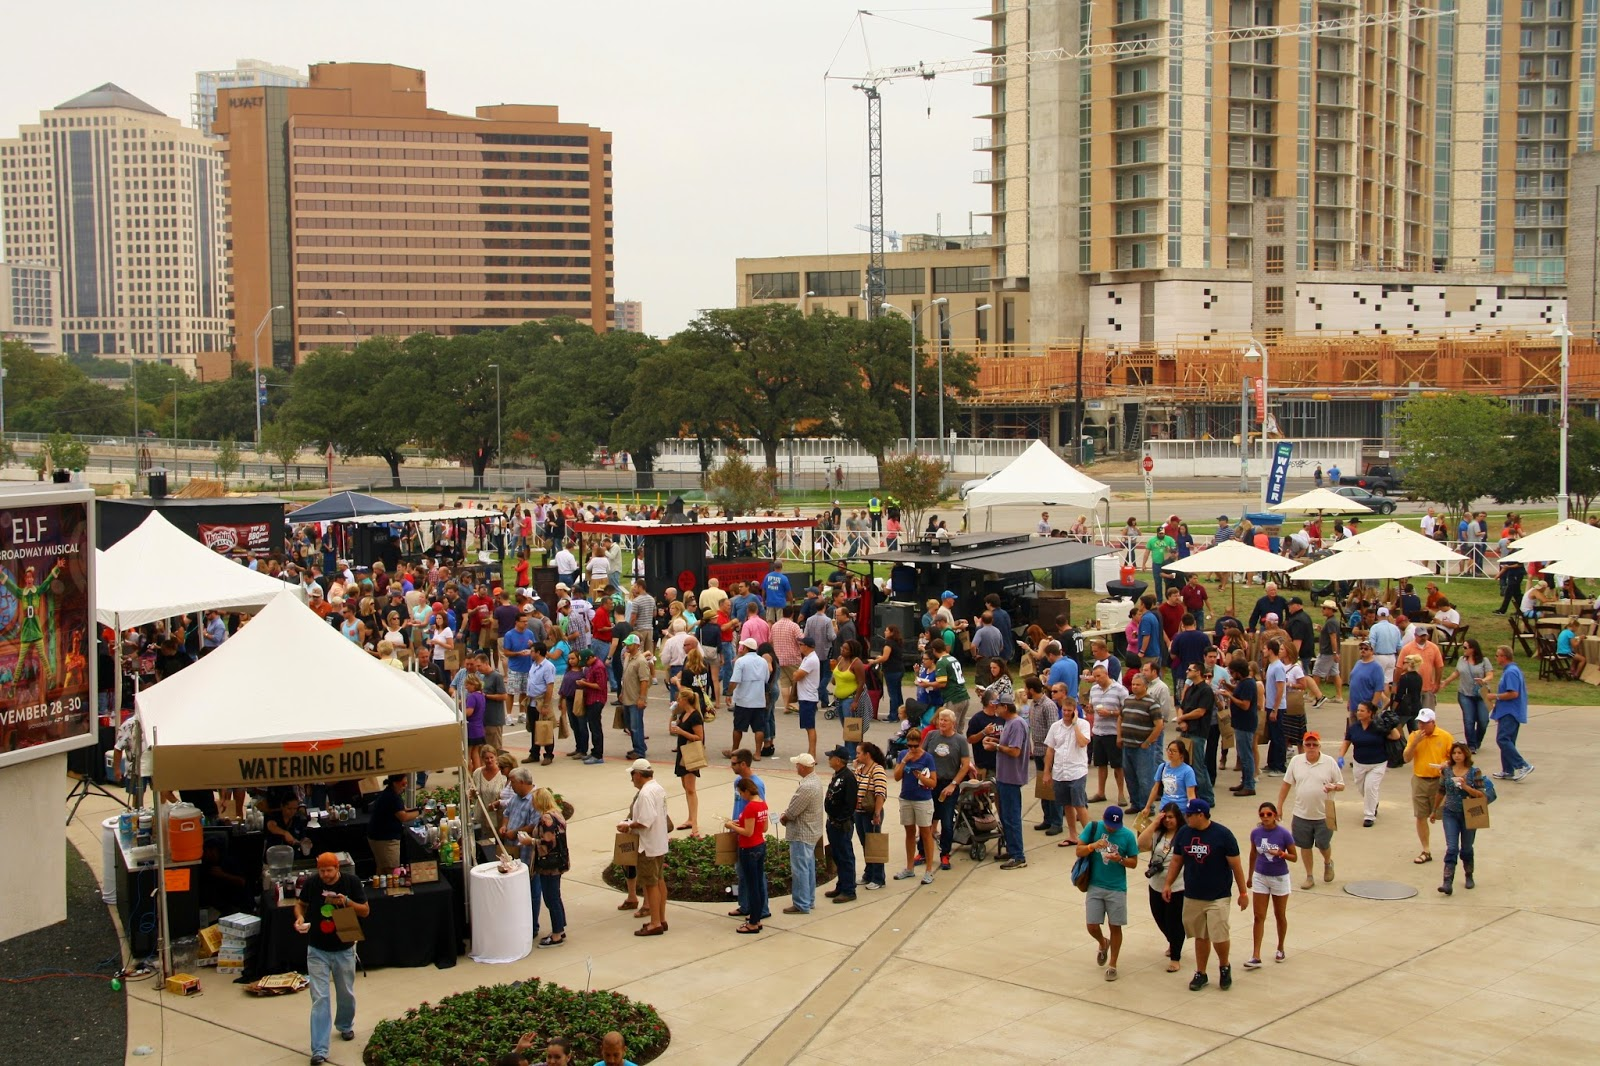 A view of the lower level of TMBBQ Fest 2014